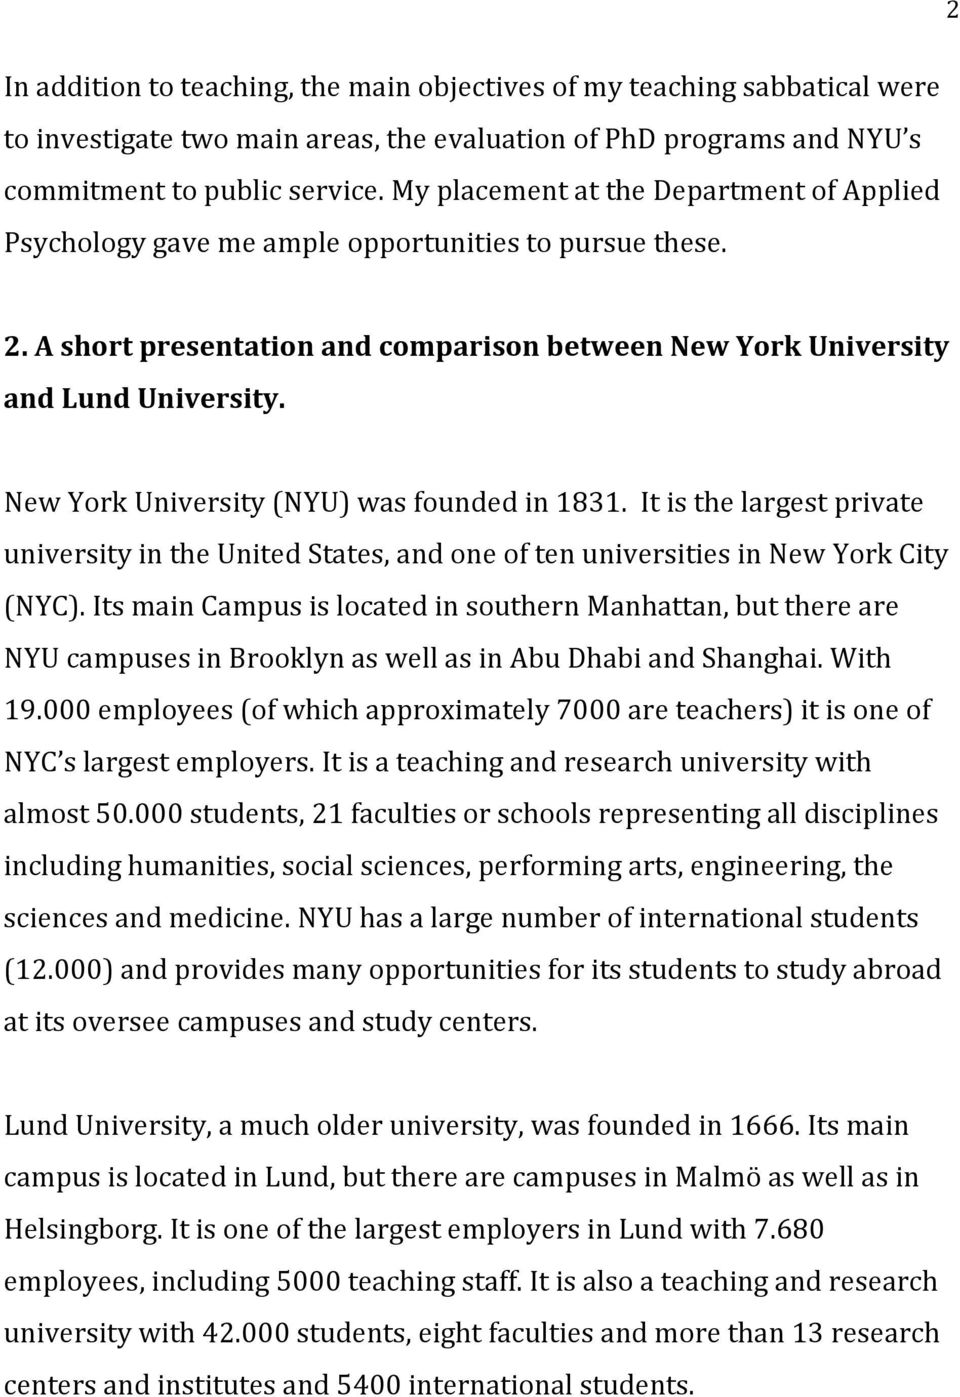 New York University (NYU) was founded in 1831. It is the largest private university in the United States, and one of ten universities in New York City (NYC).